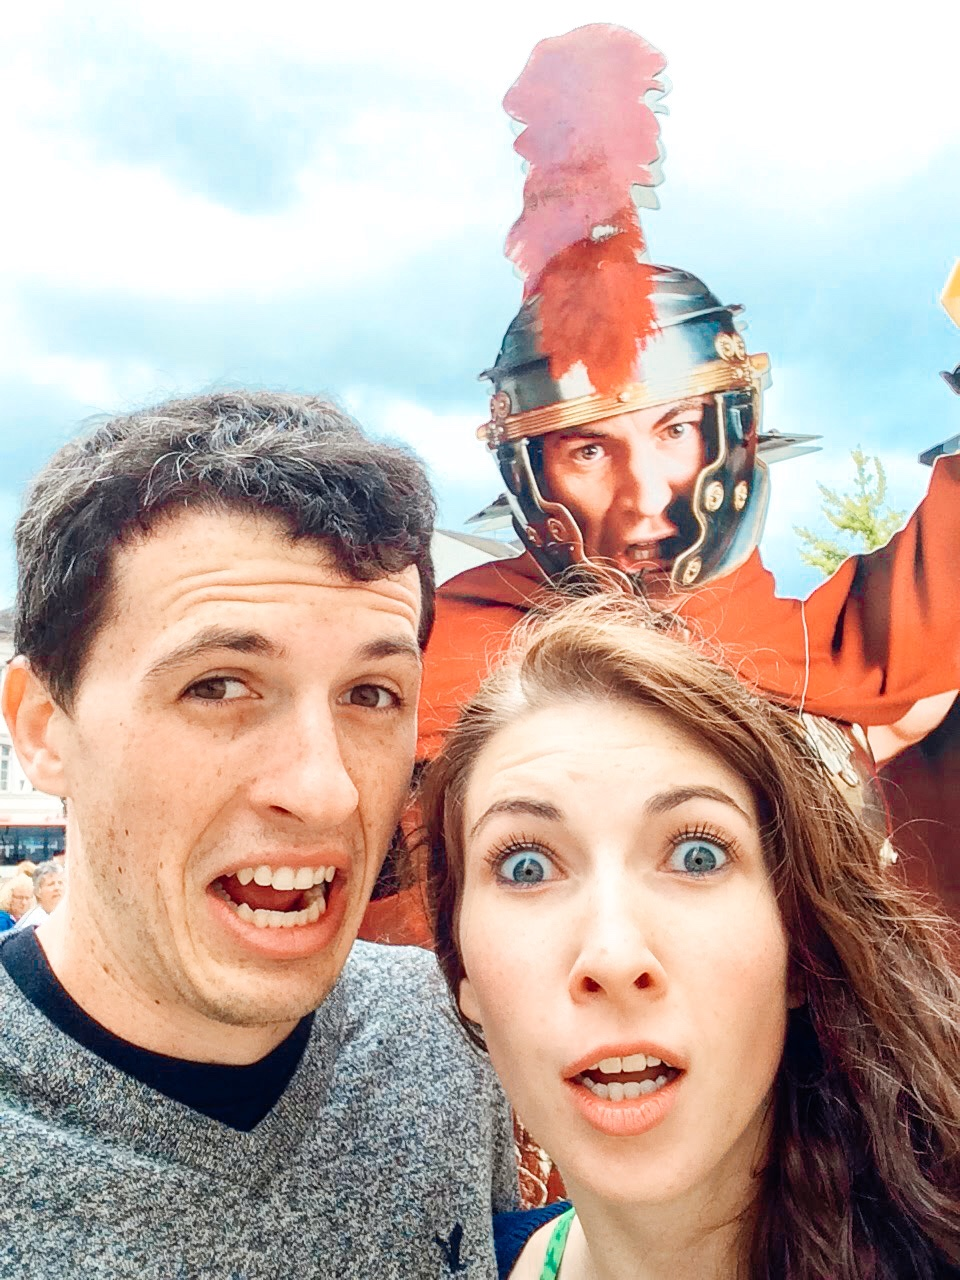 man and woman pose with cutout of ancient Roman soldier